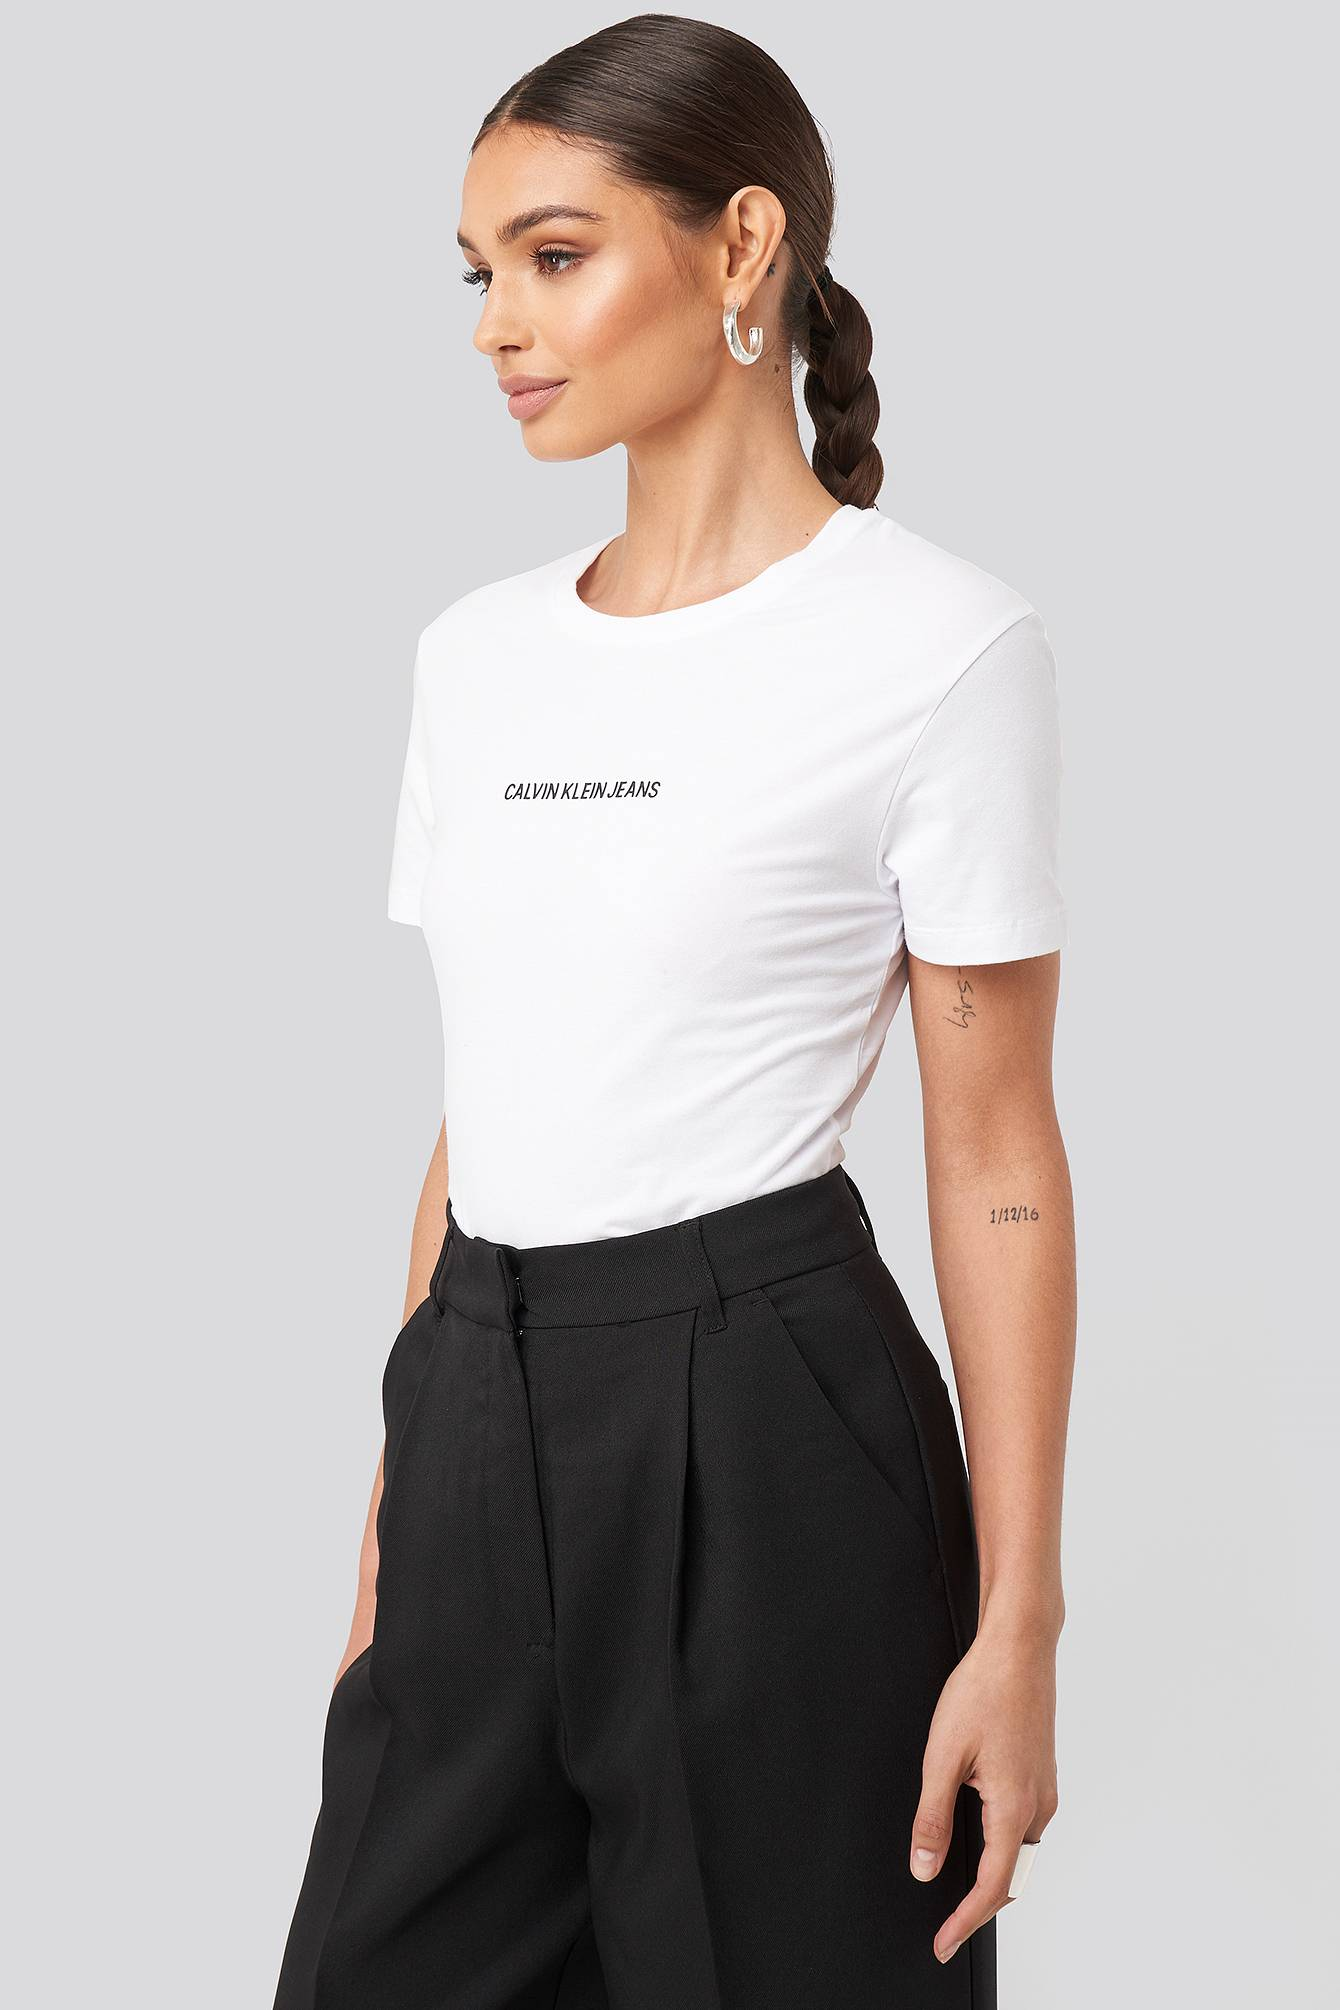 Calvin Klein Institutional Logo Stretch Slim Tee - White  - Size: Small